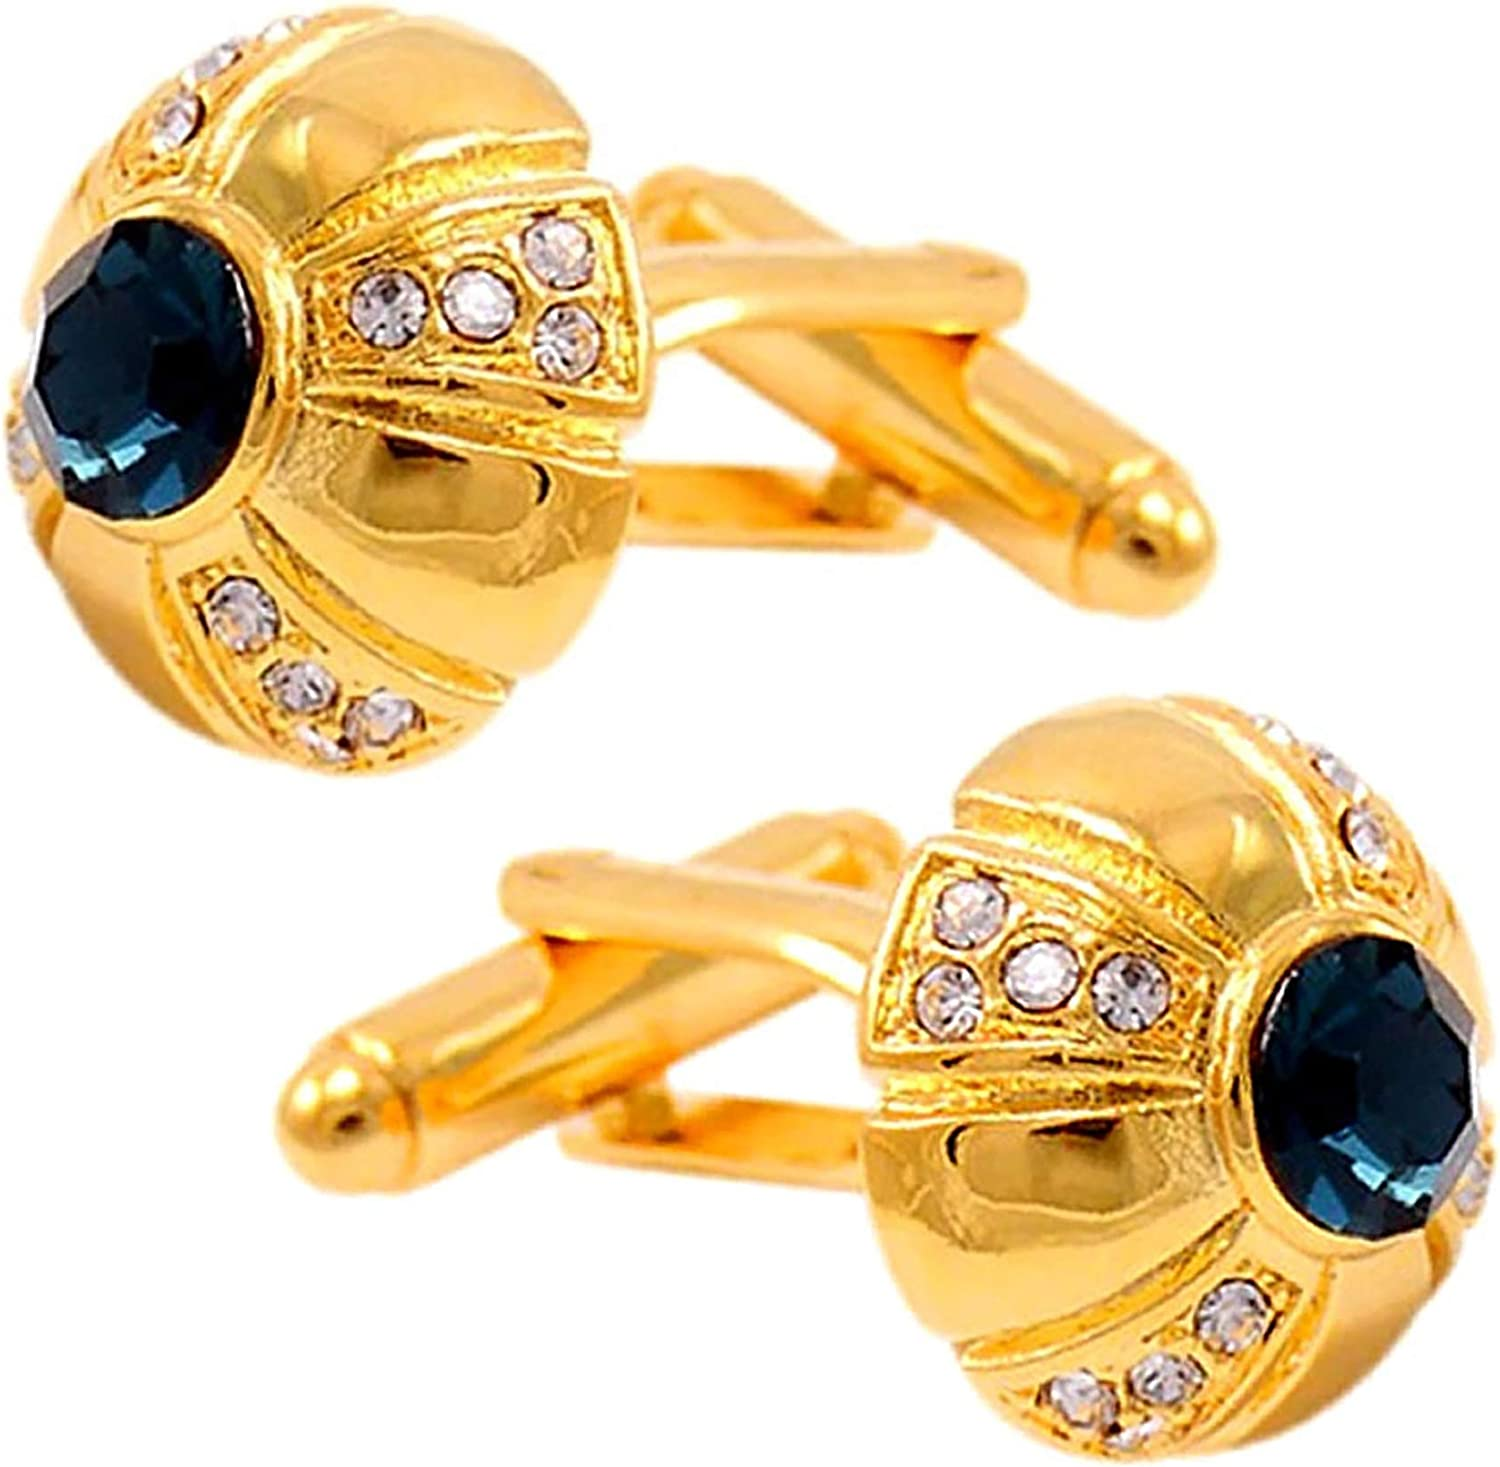 Popular product Thot Ra Classic Gold Tone Mod. For Men A-754 Cufflinks 70% OFF Outlet